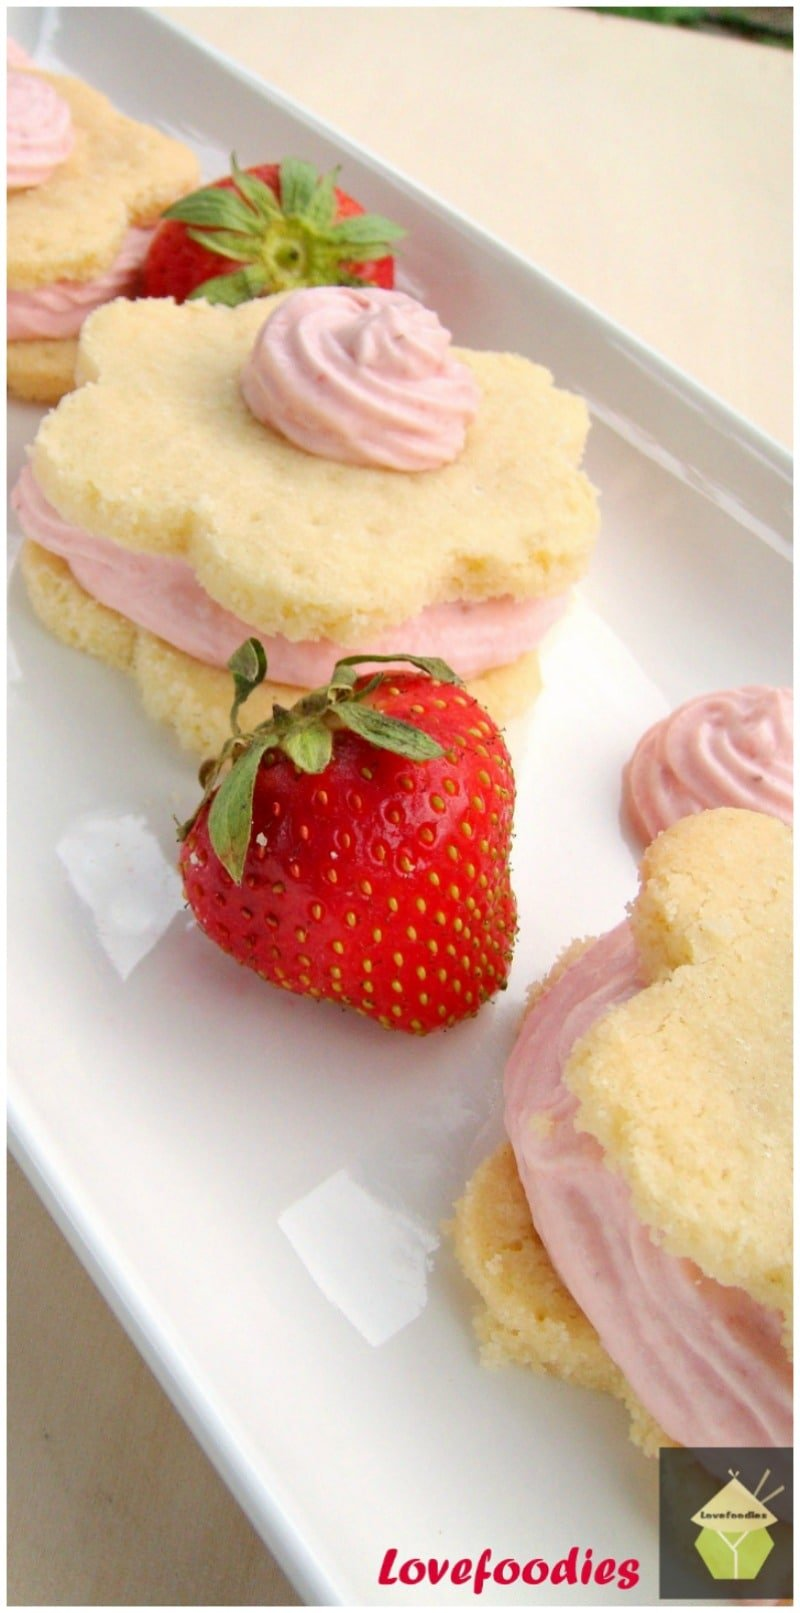 Strawberry Mousse Shortbread. Creamy, fluffy mousse sandwiched between two wonderful Shortbread cookies! | Lovefoodies.com